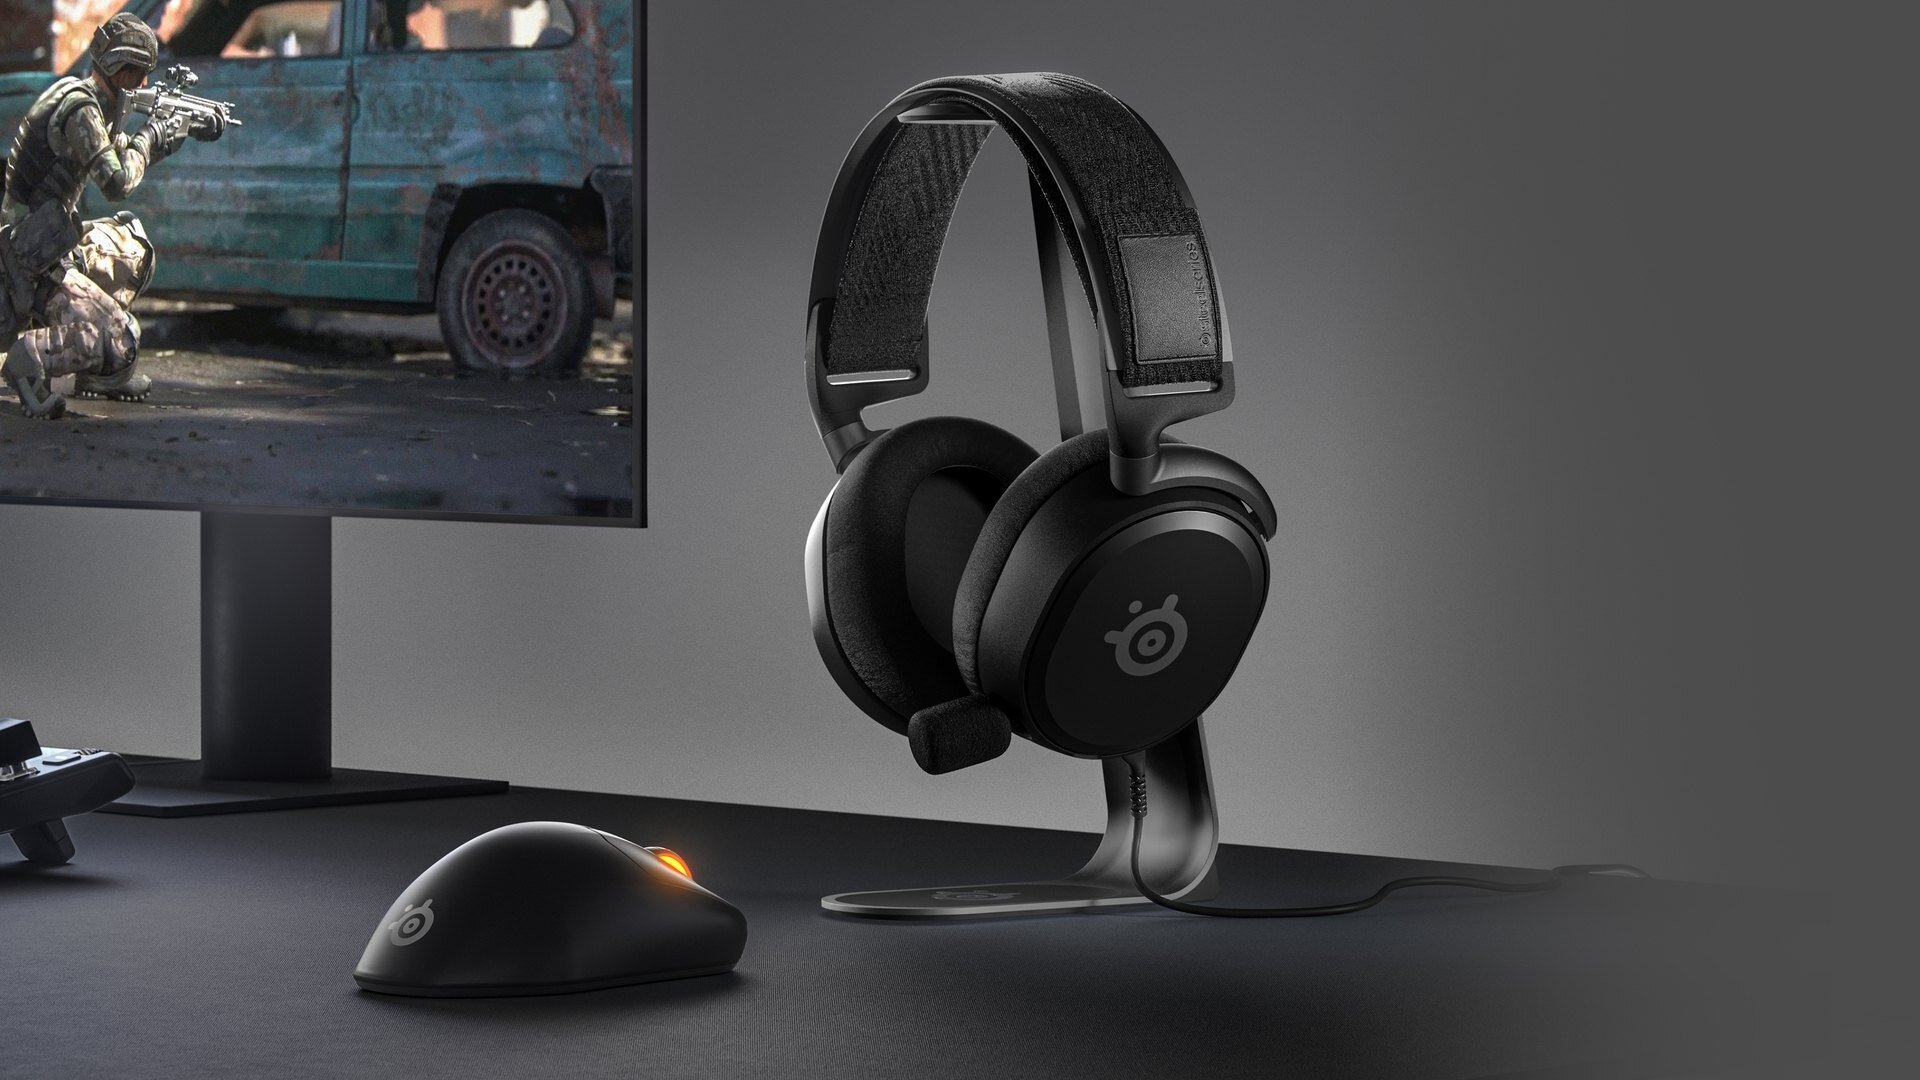 SteelSeries Arctis Prime Headset and Prime Wireless Mouse